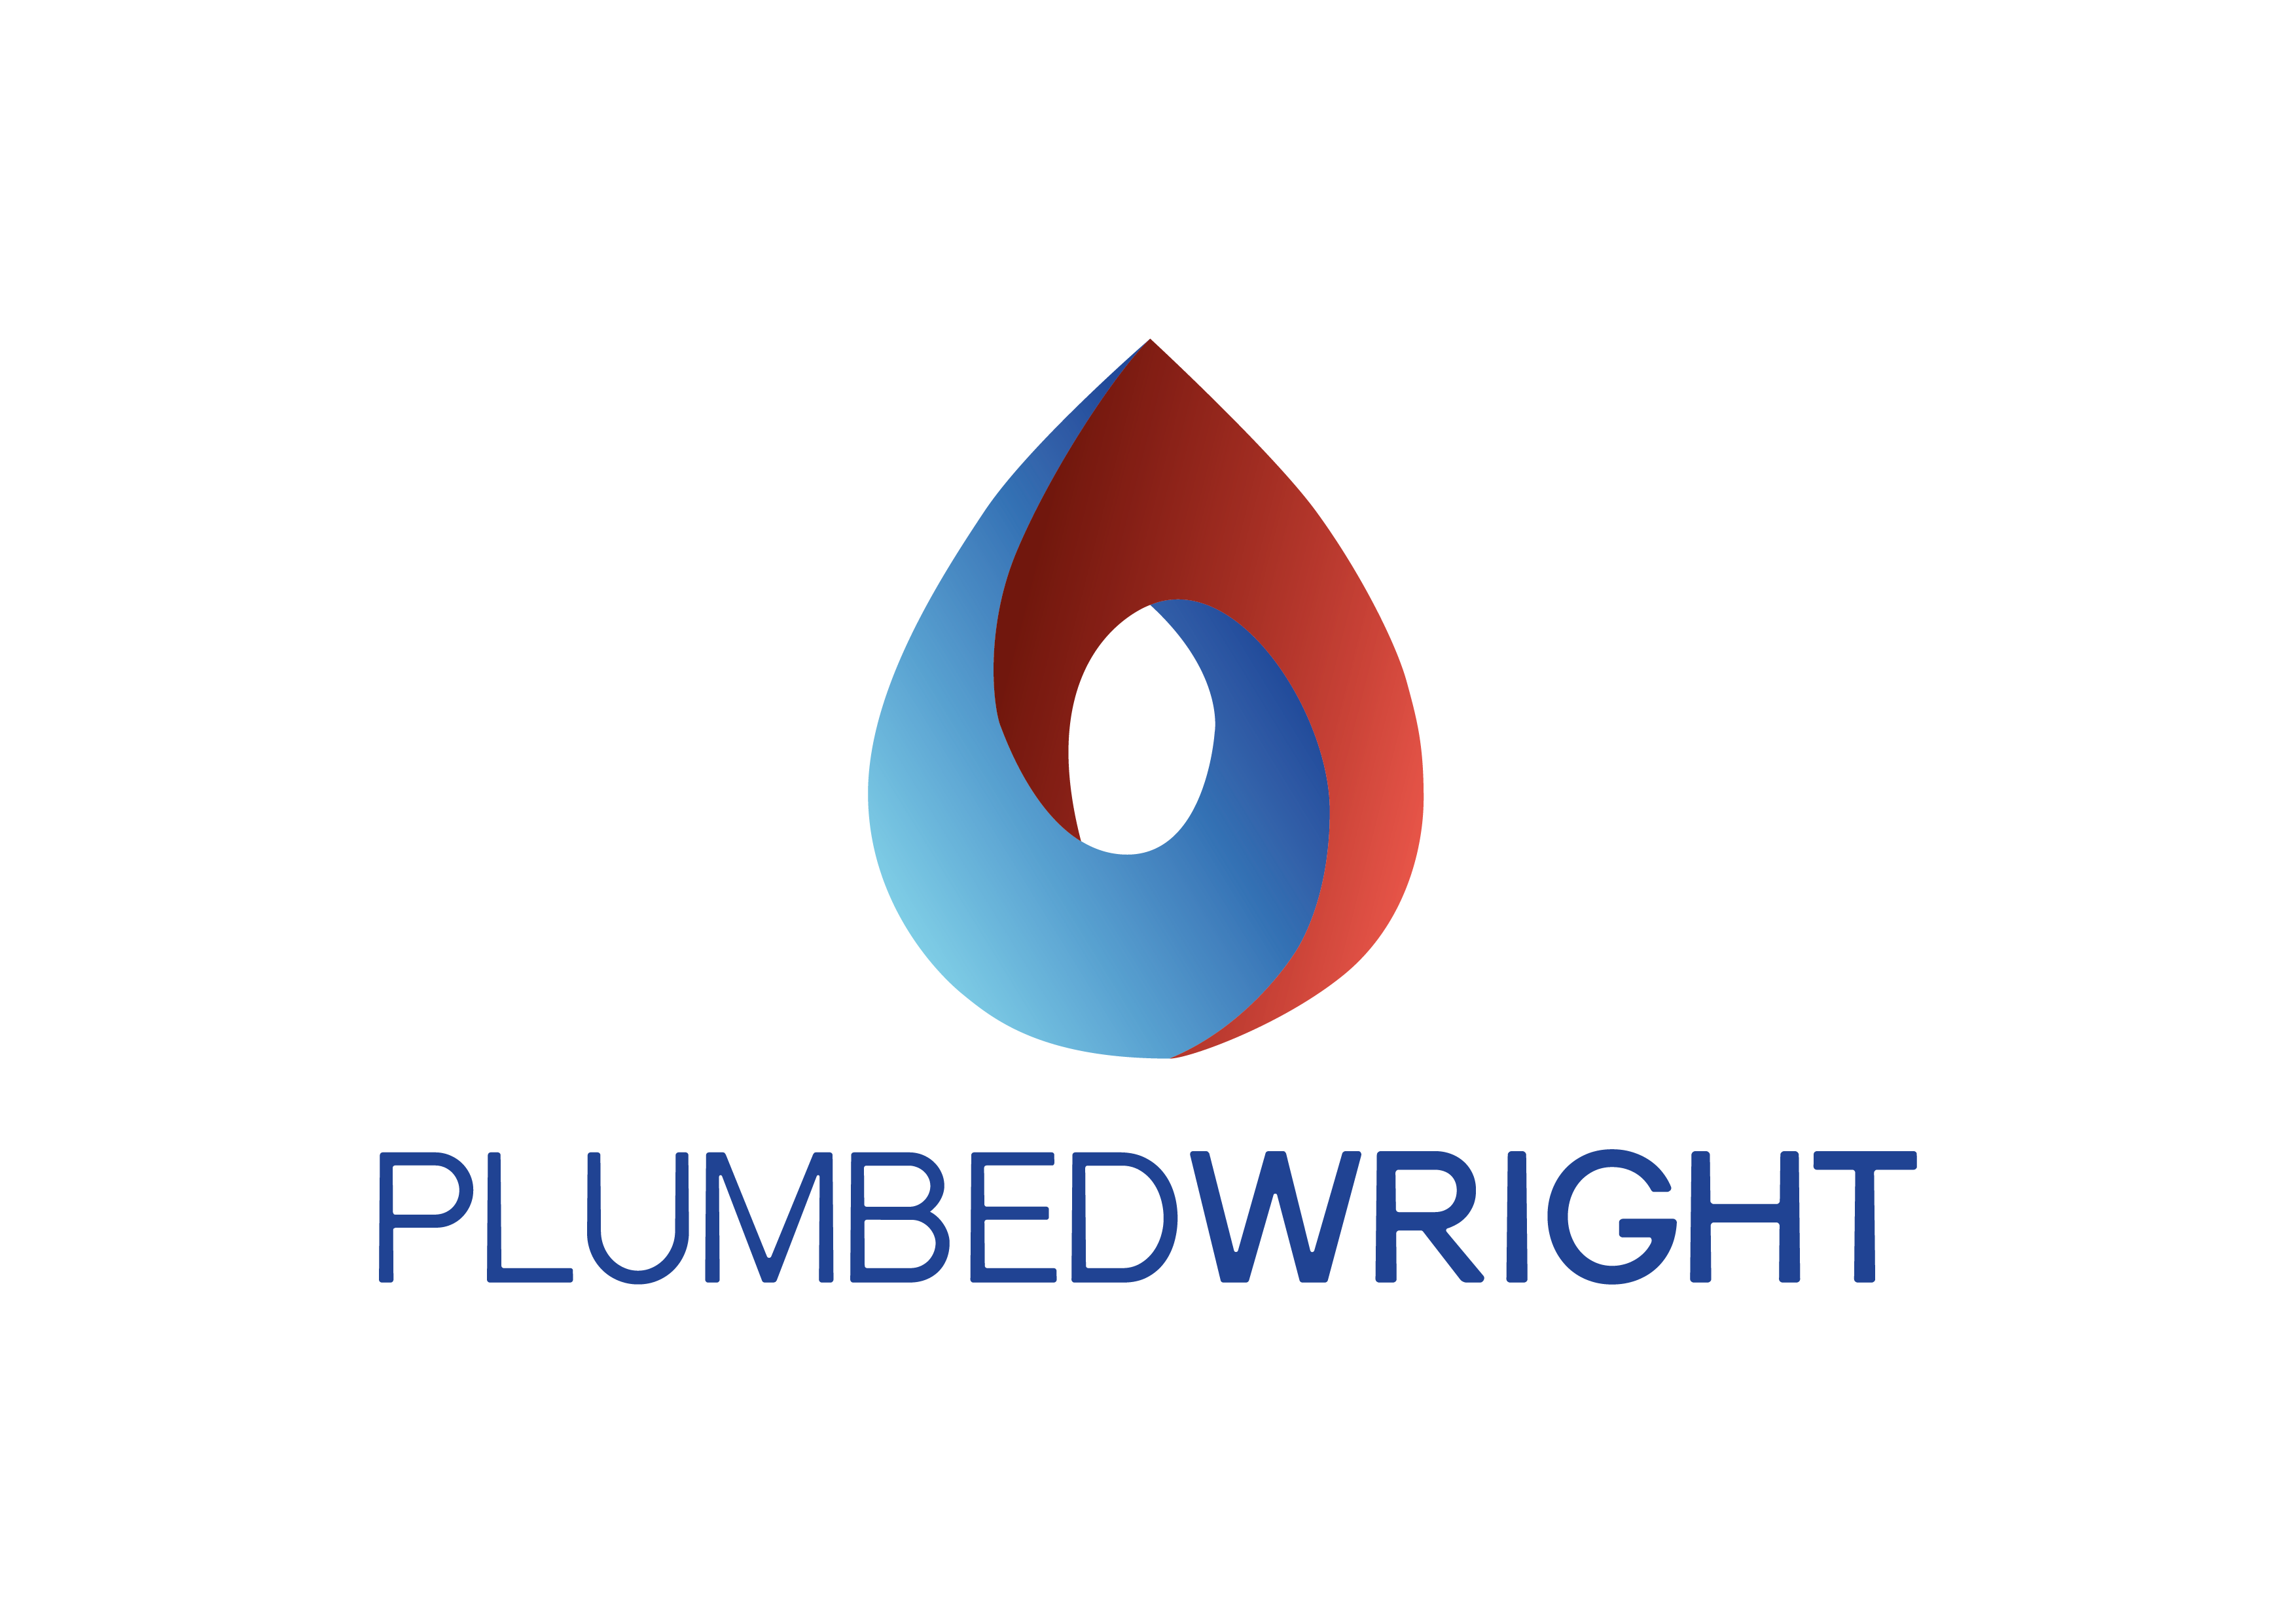 PlumbedWright LTD